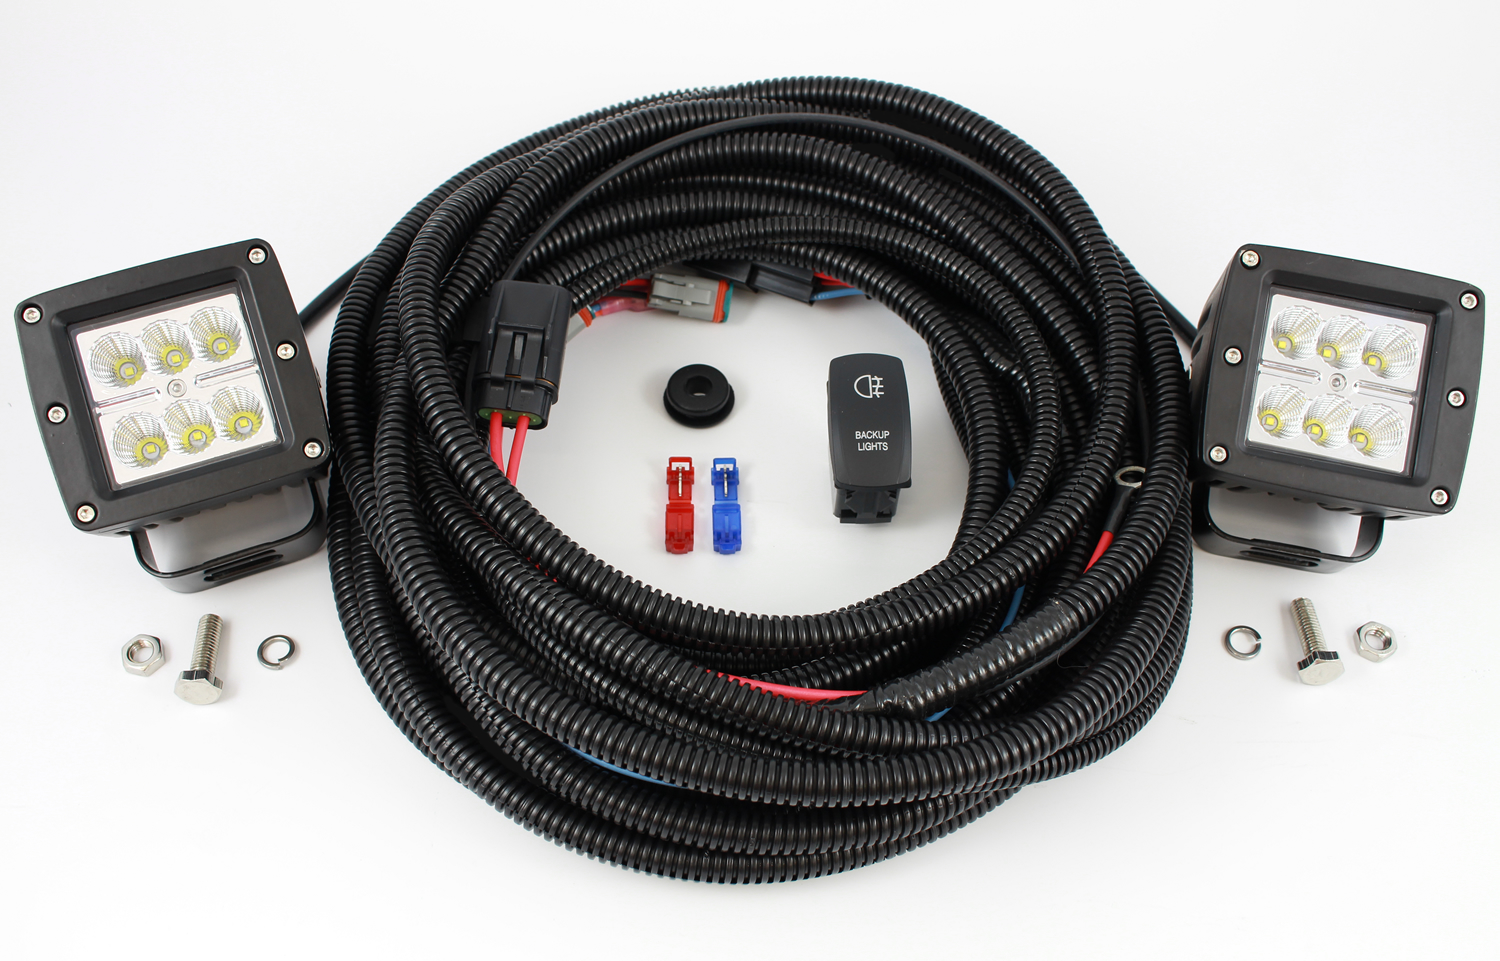 5201 complete truck & suv backup reverse lighting kit with rigid independent control auxiliary lamp wire harness kit instructions at gsmx.co